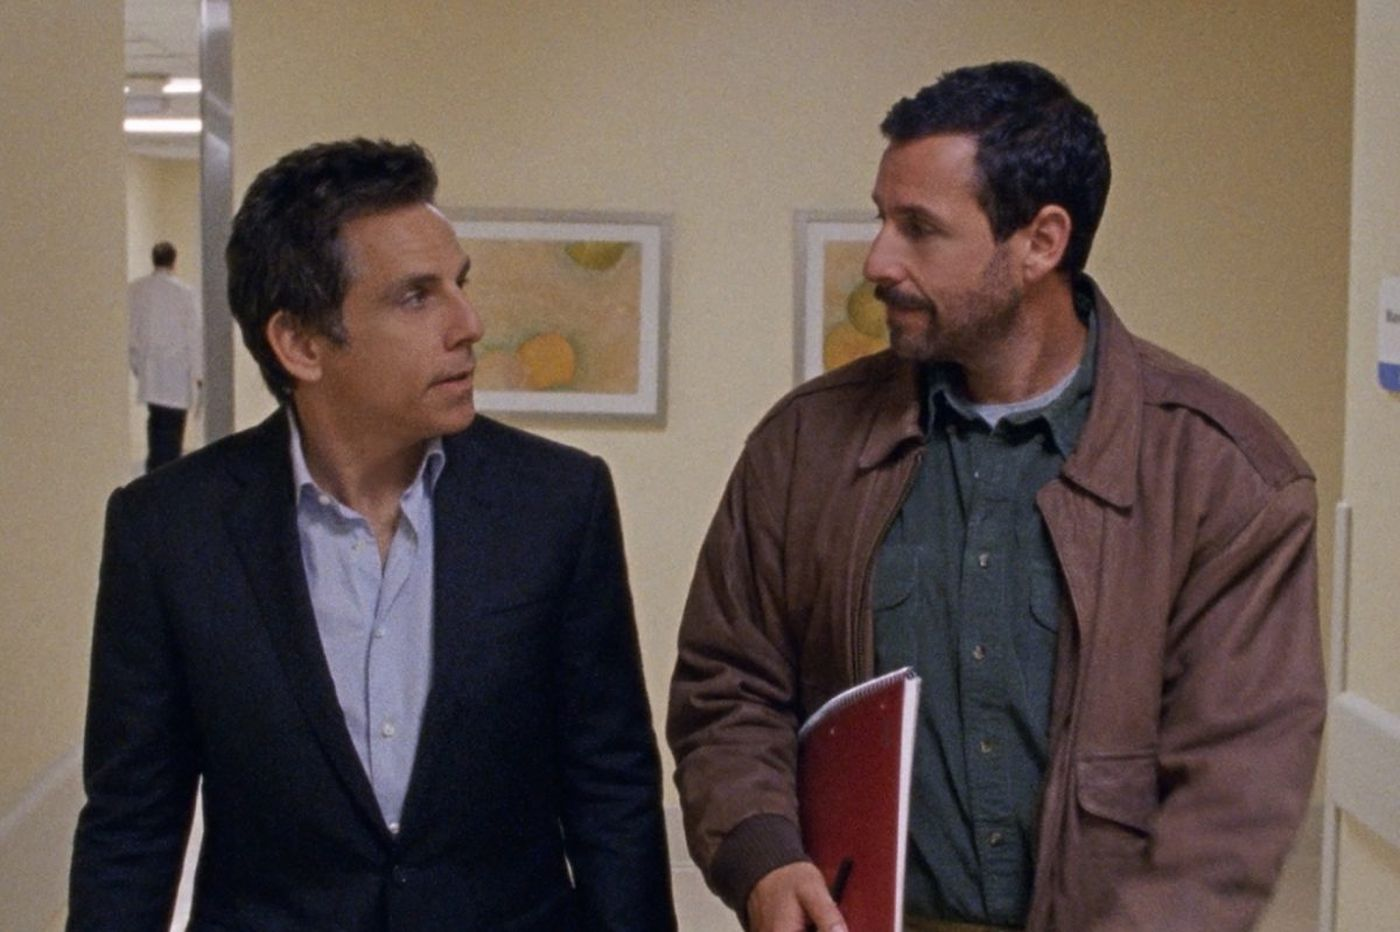 Adam Sandler reminds us he can act (when he wants to) in 'The Meyerowitz Stories'